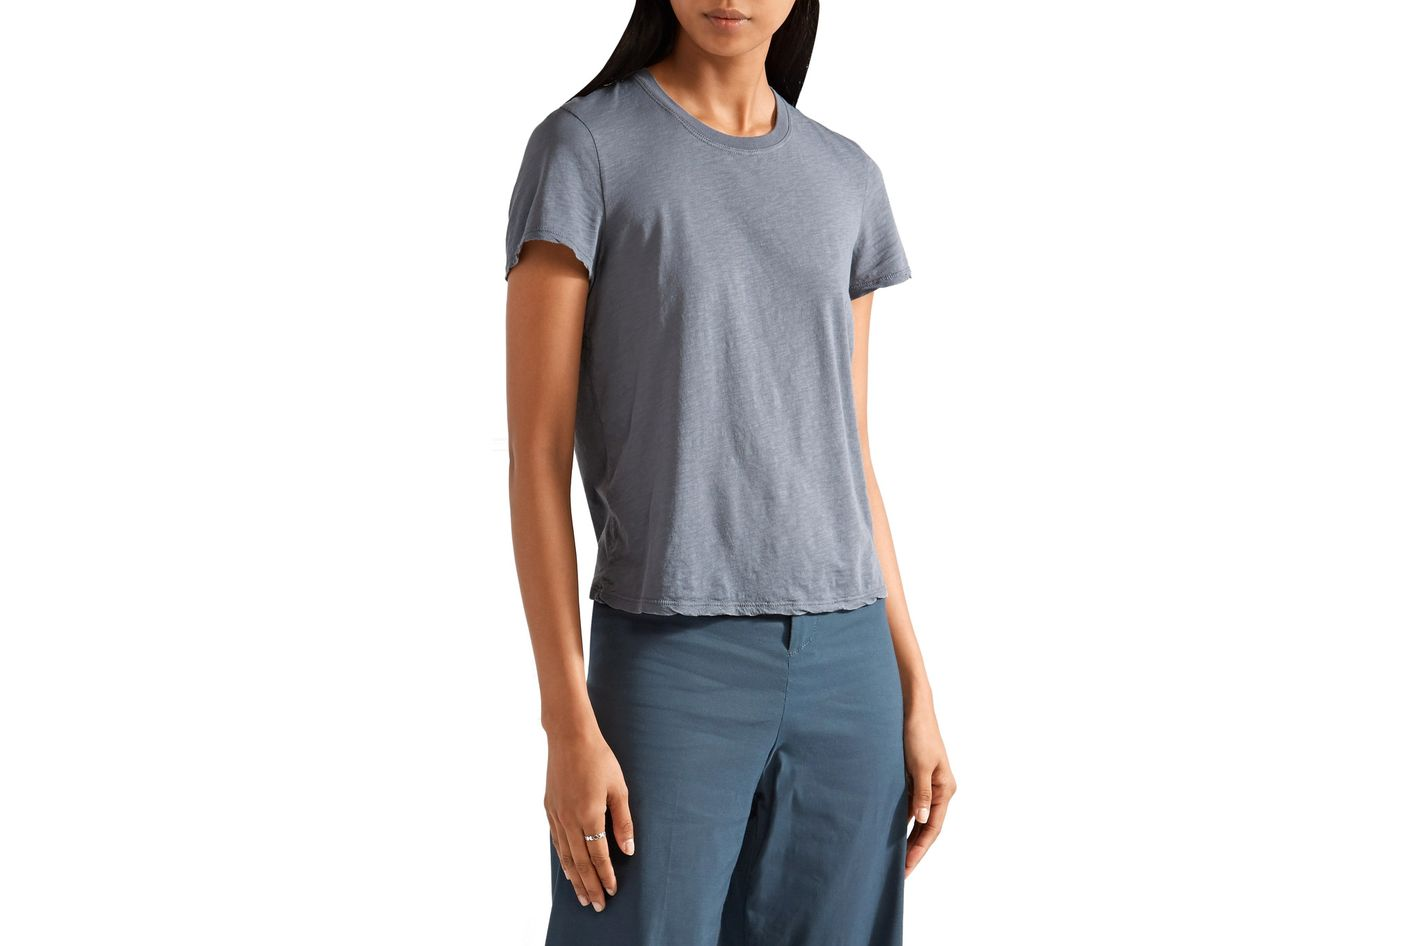 James Perse Slub Cotton T-Shirt